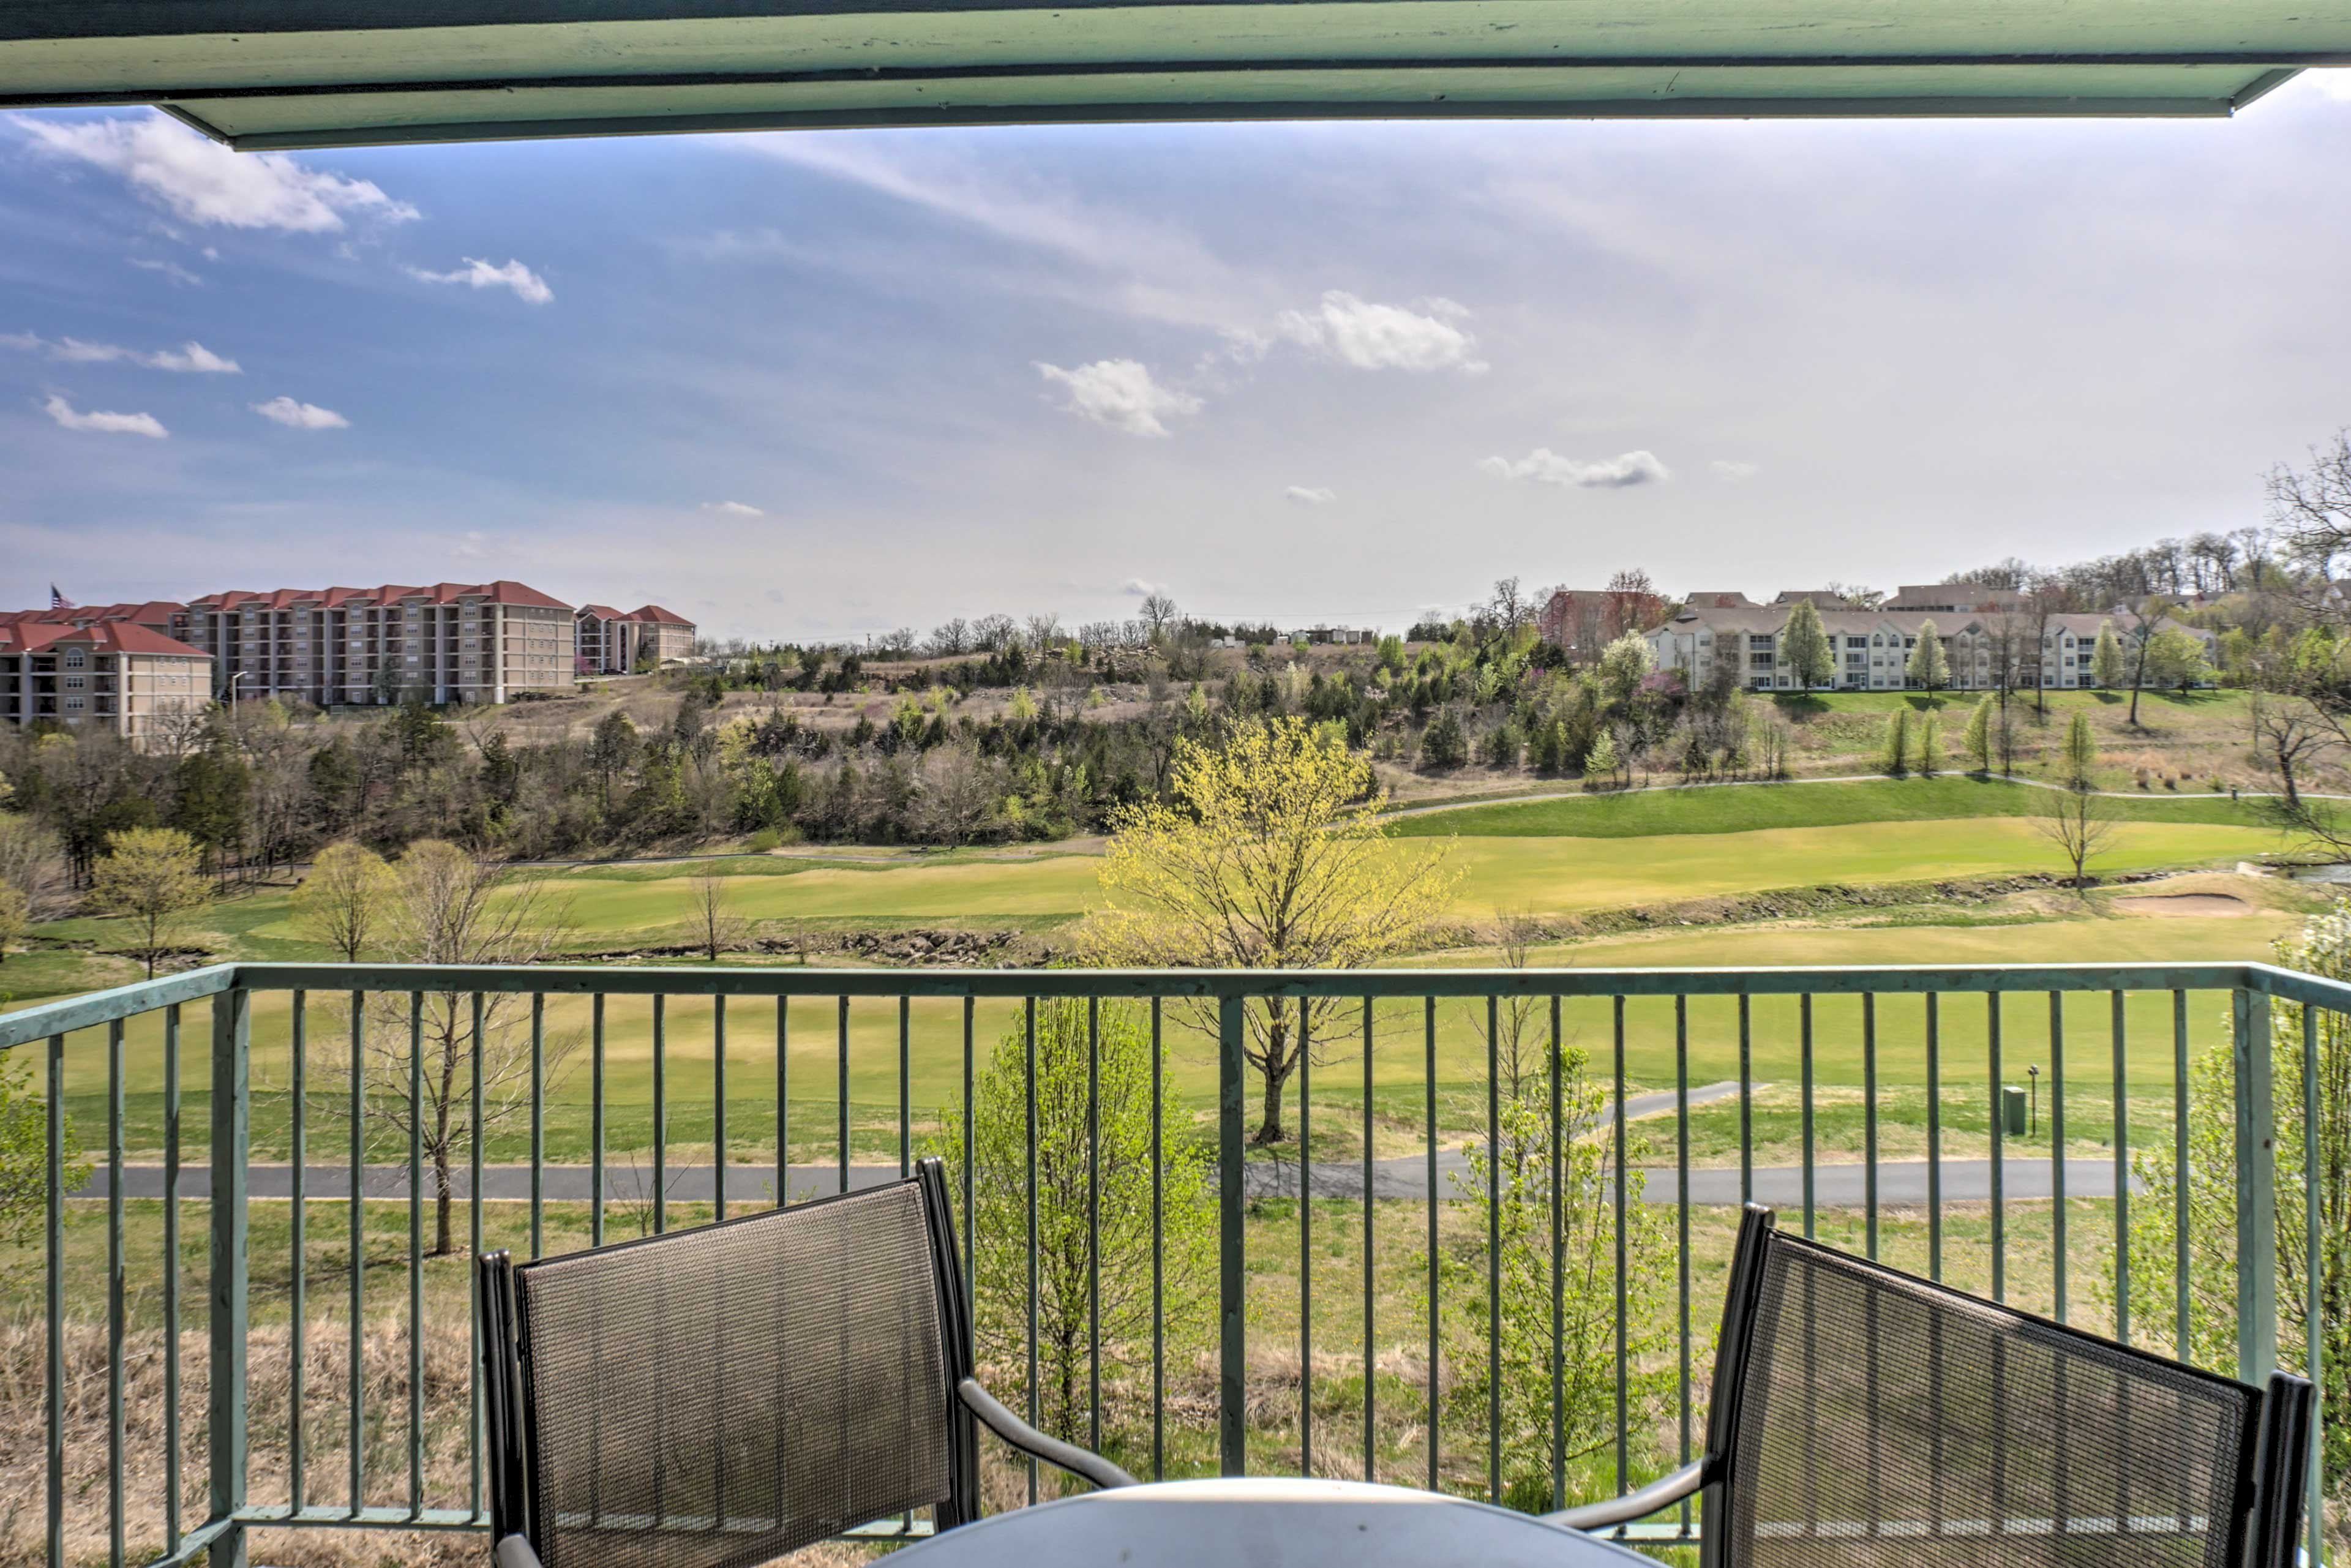 Plan an exciting getaway to this Branson vacation rental condo!